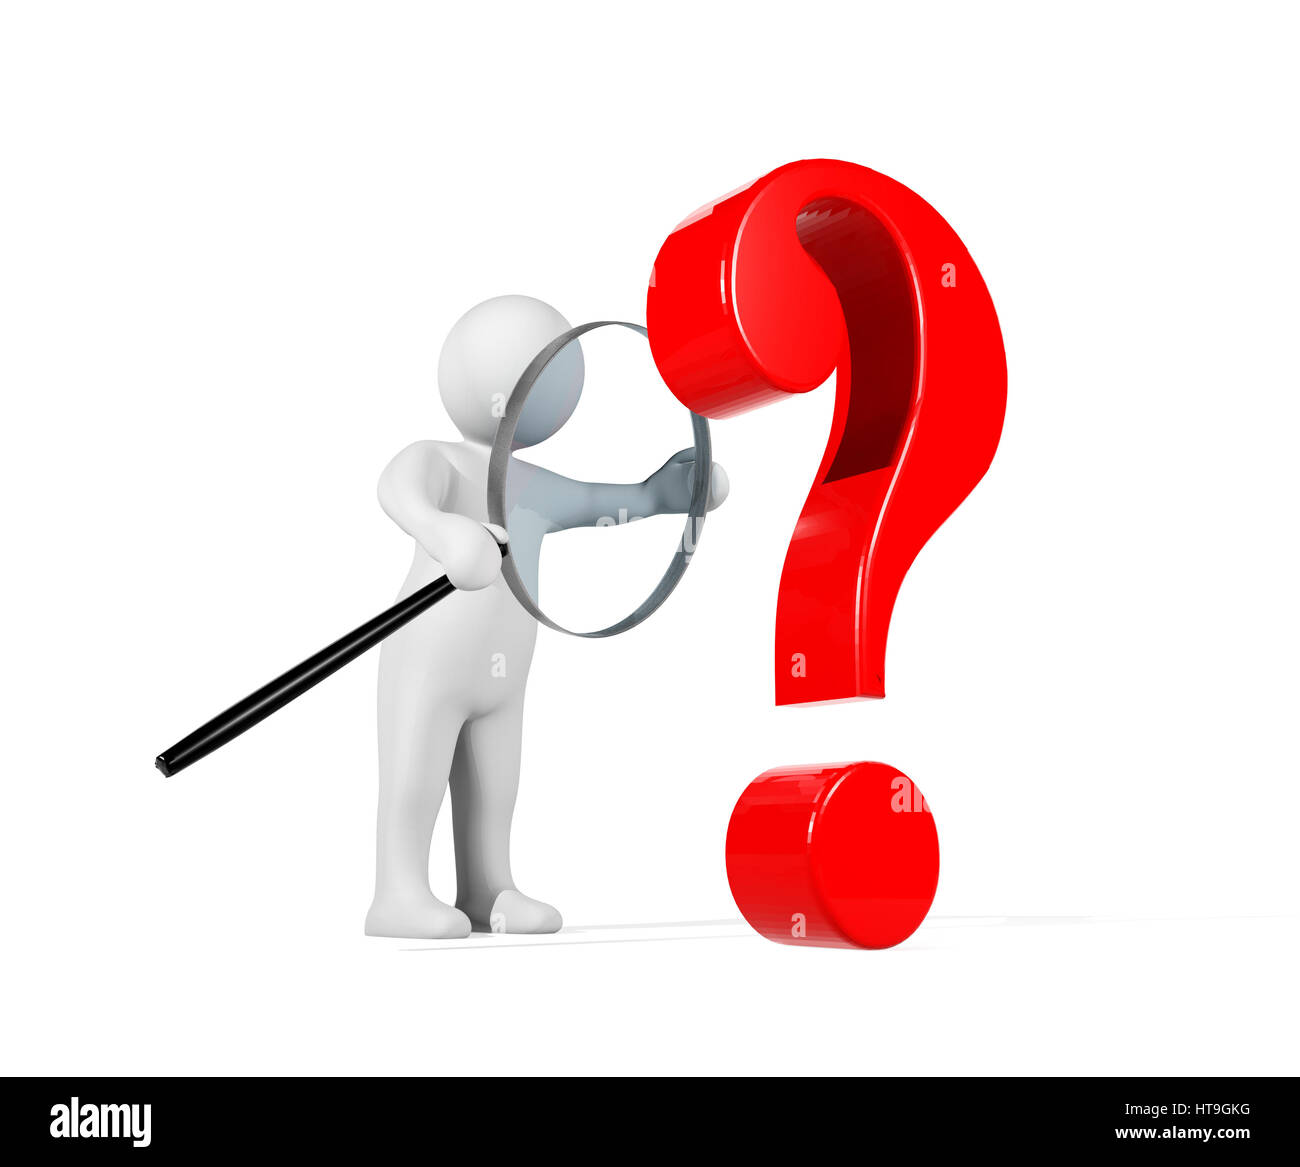 3d person with magnifying glass and question mark stock images image - 3d Man Using Magnifying Glass Detecting Red Question Mark Conceptual Image Presenting Problem Detected